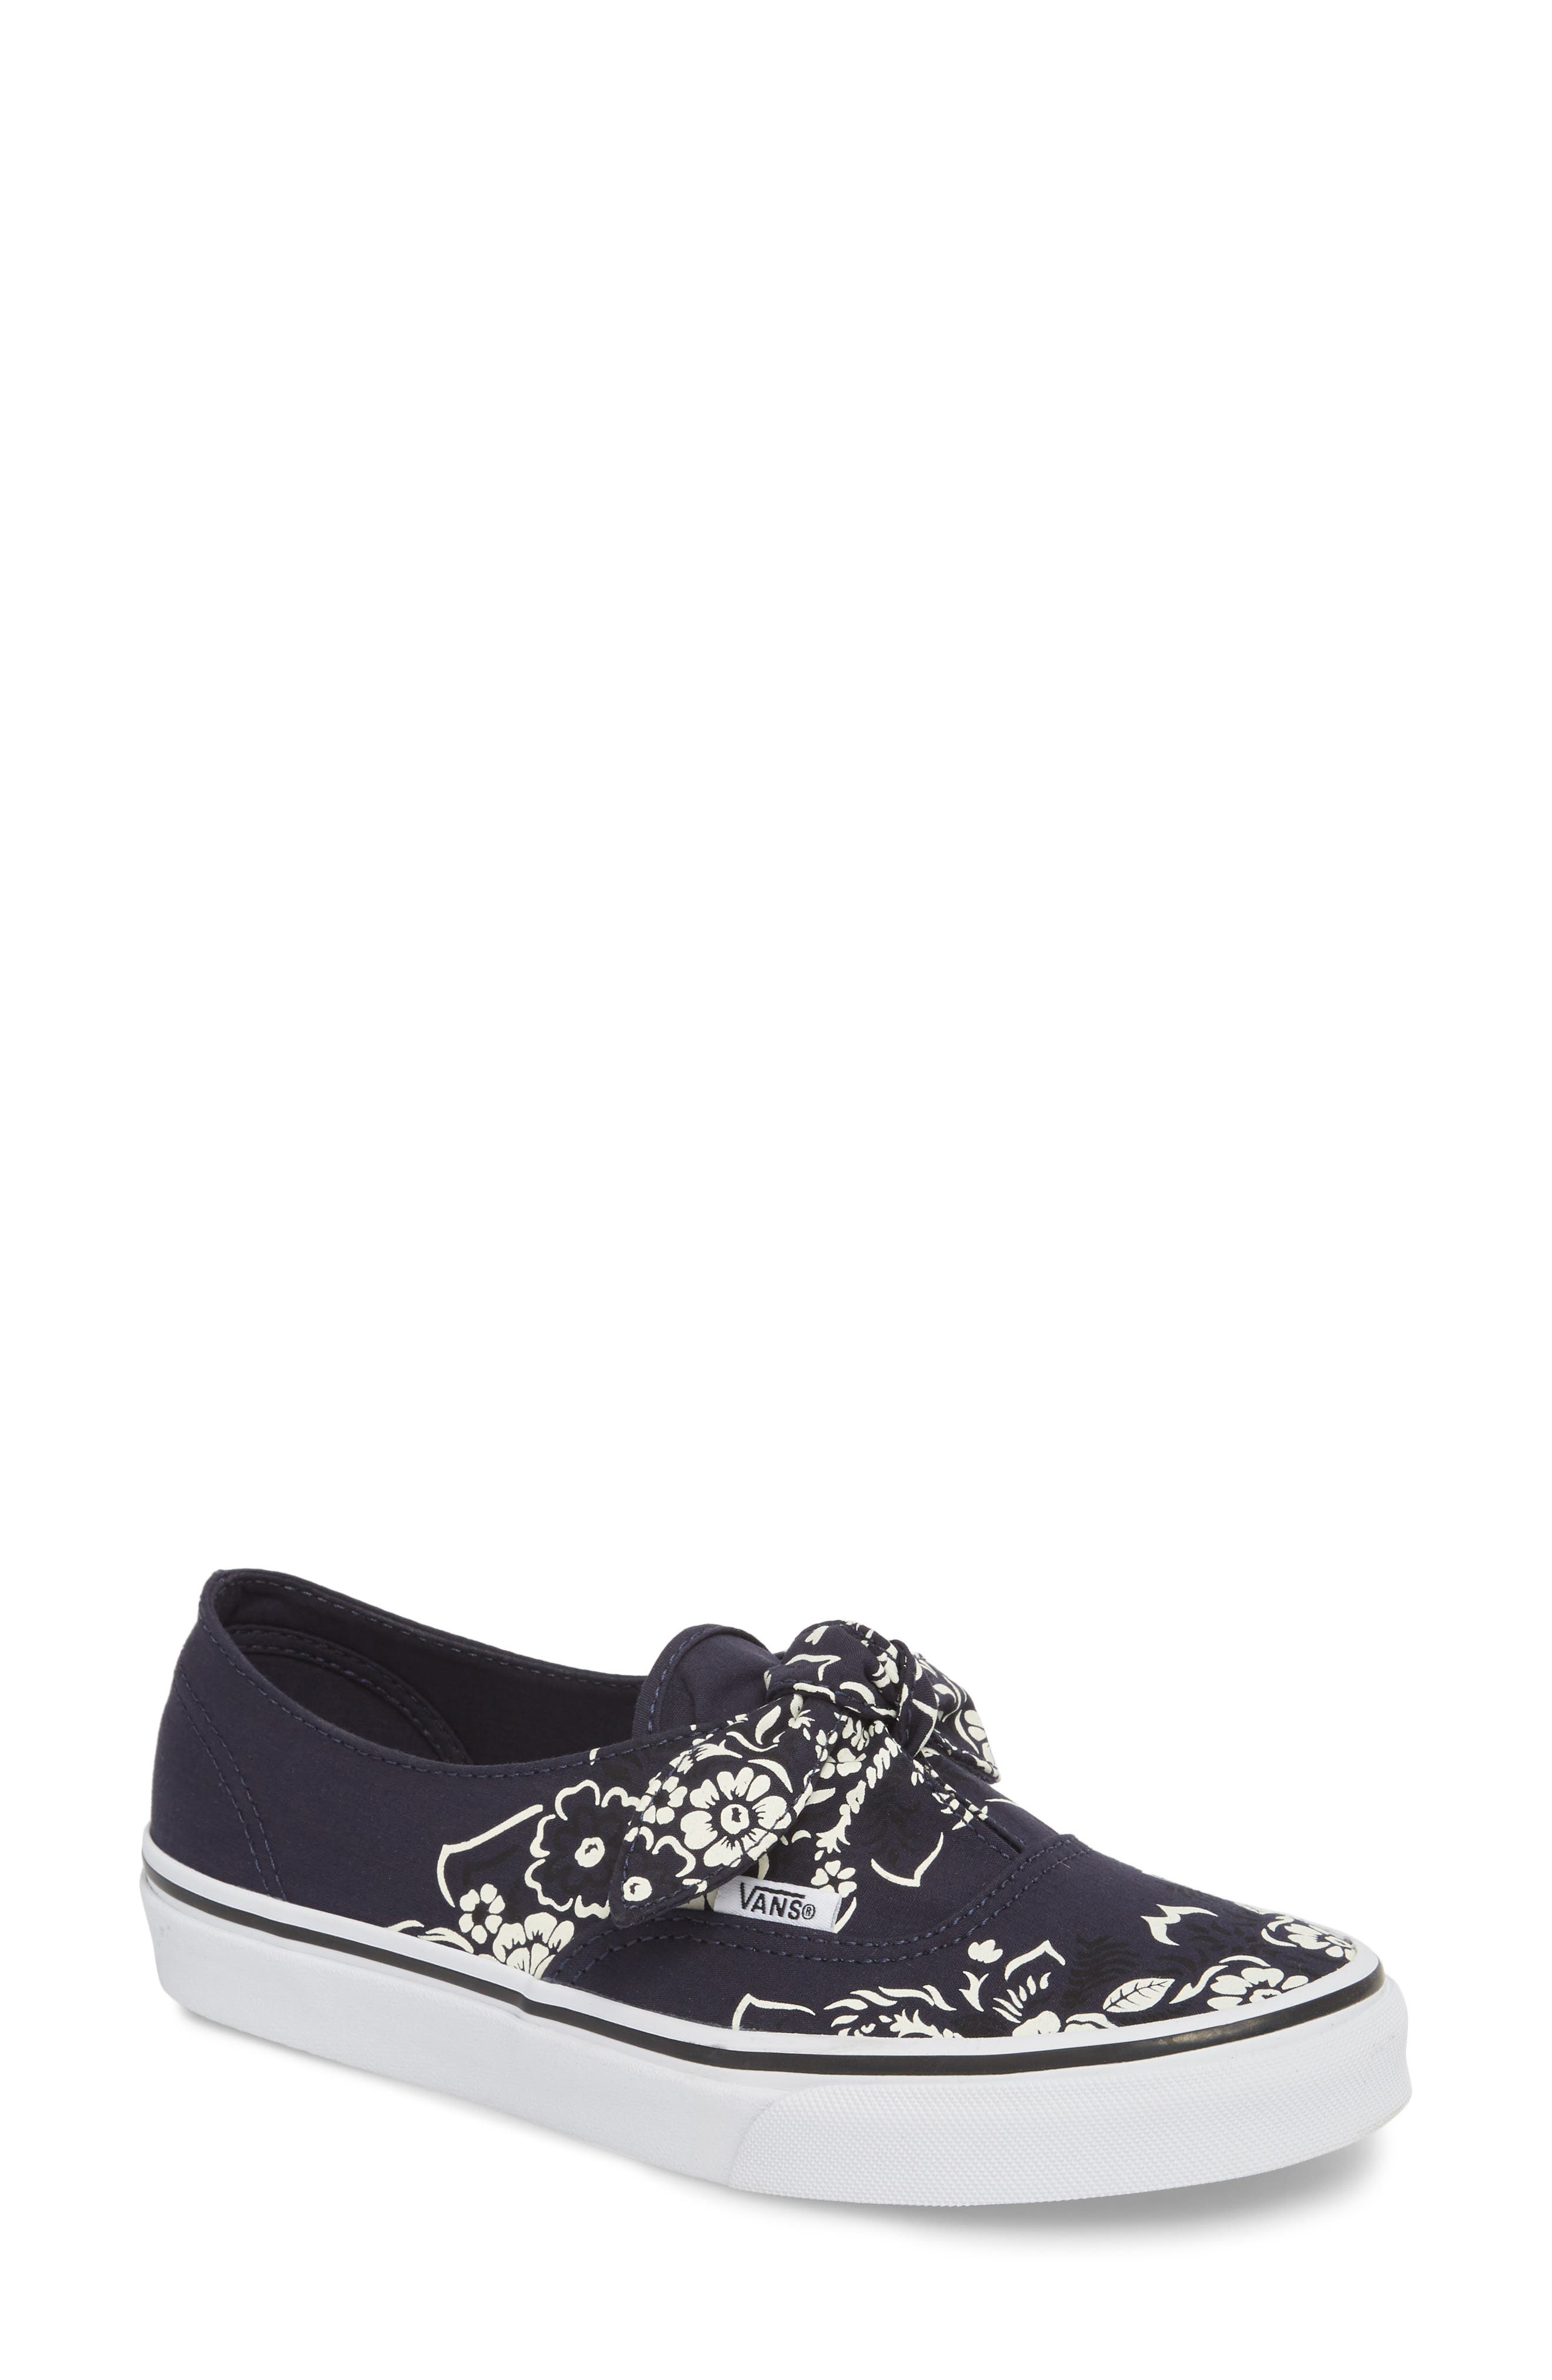 UA Authentic Knotted Floral Bandana Slip-On Sneaker,                         Main,                         color, PARISIAN NIGHT/ TRUE WHITE